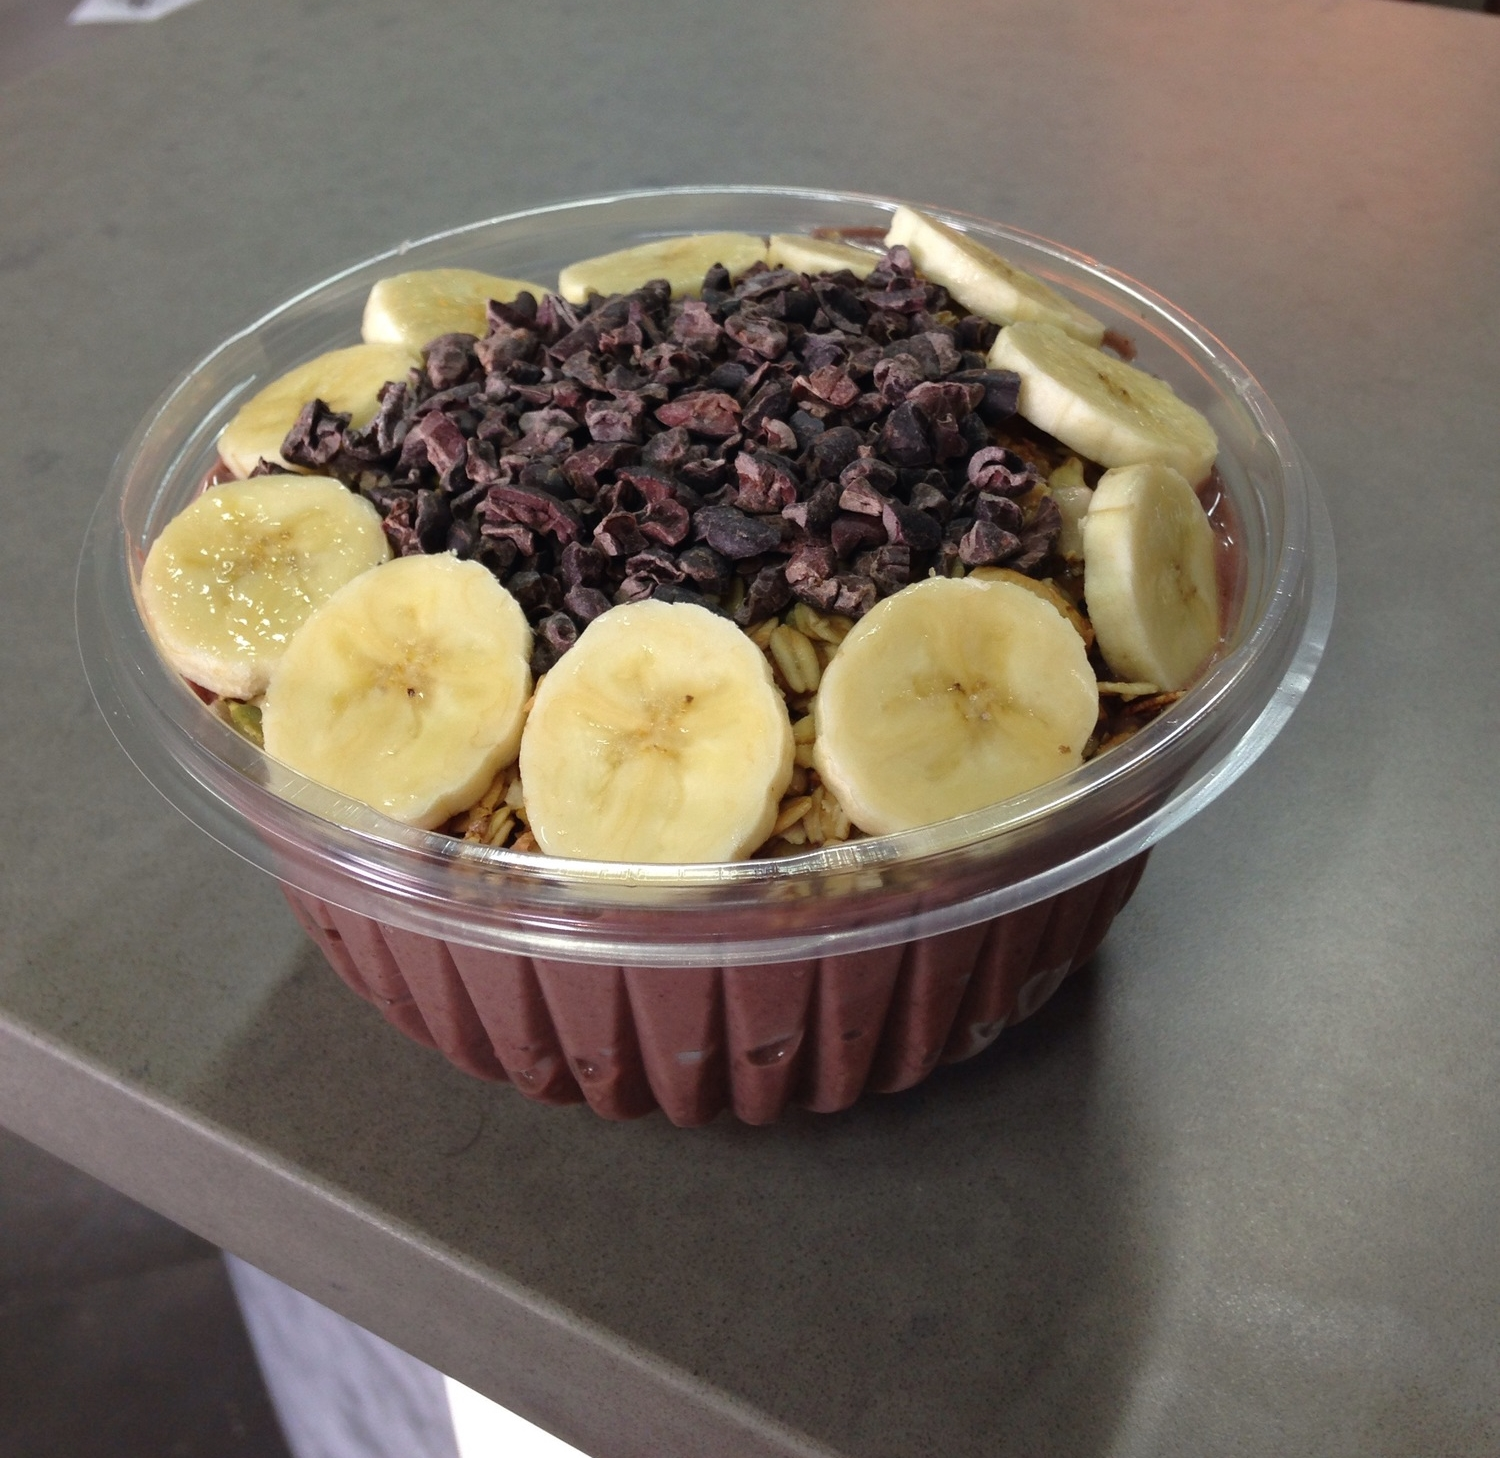 Raw Republic's PB&A Bowl: acai, banana, almond milk, and peanut butter blended together, topped with sliced banana, granola, and cacao nibs.